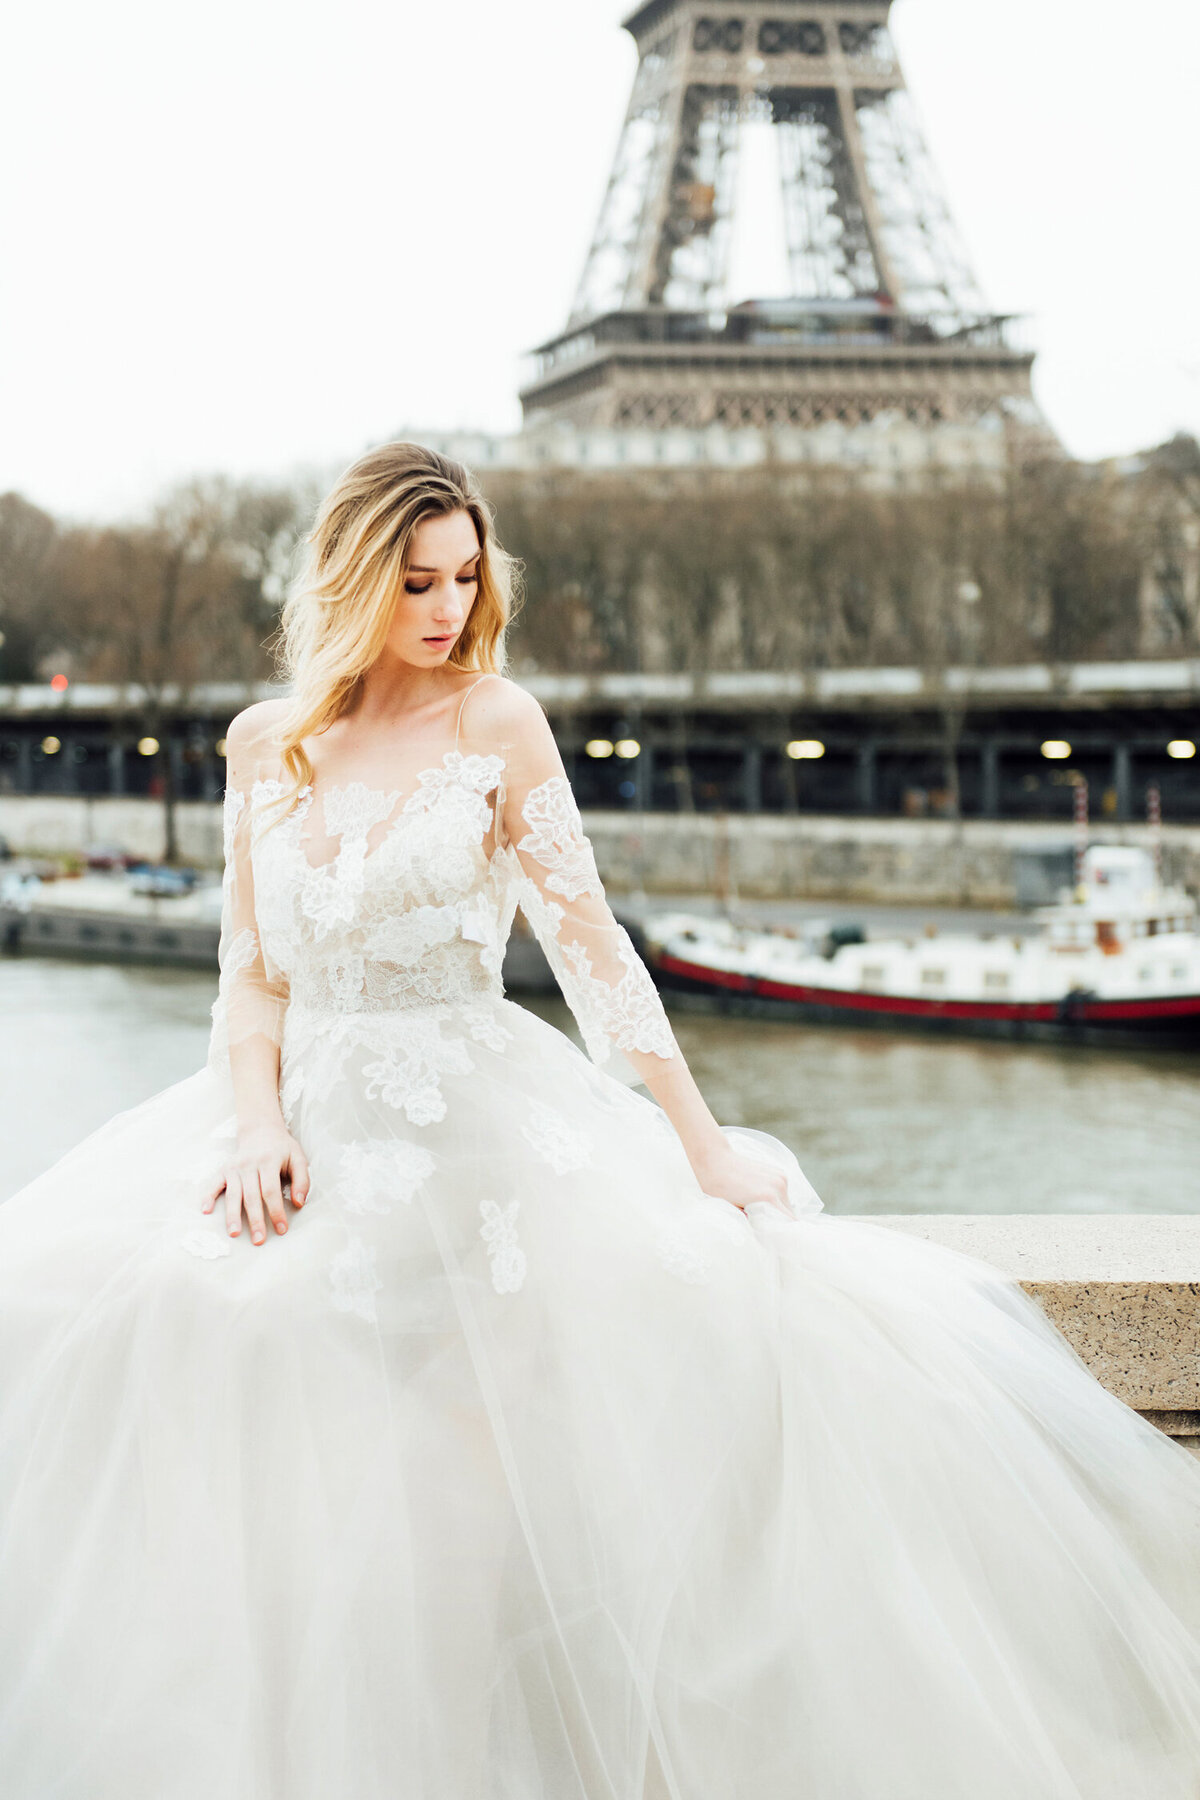 Katie Mitchell, Monique Lhuillier Bridal Paris France Wedding Trine Juel Hair and makeup 6